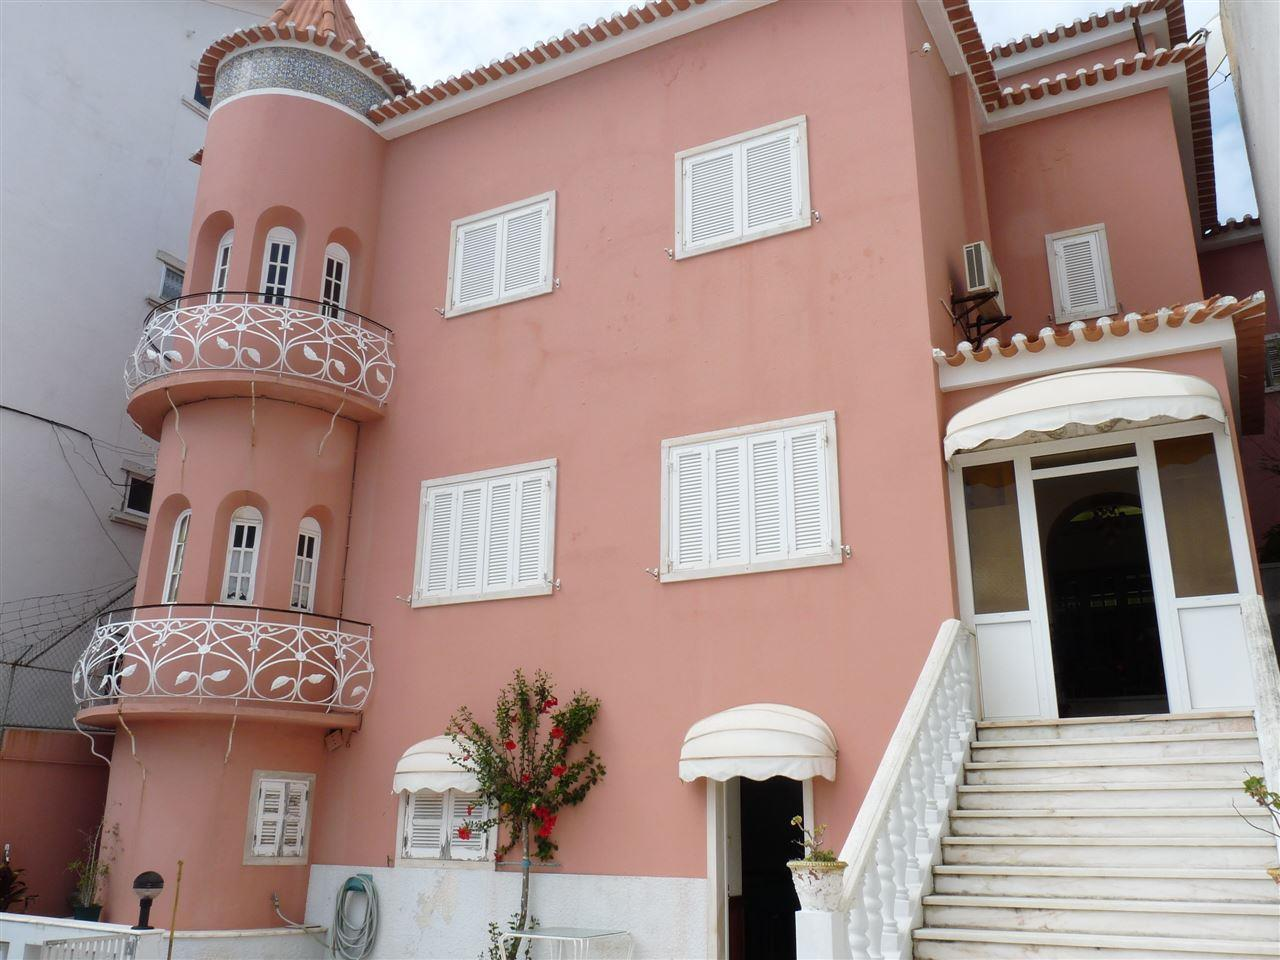 Moradia para Venda às Terraced house, 4 bedrooms, for Sale Alto Sta Catarina, Oeiras, Lisboa Portugal